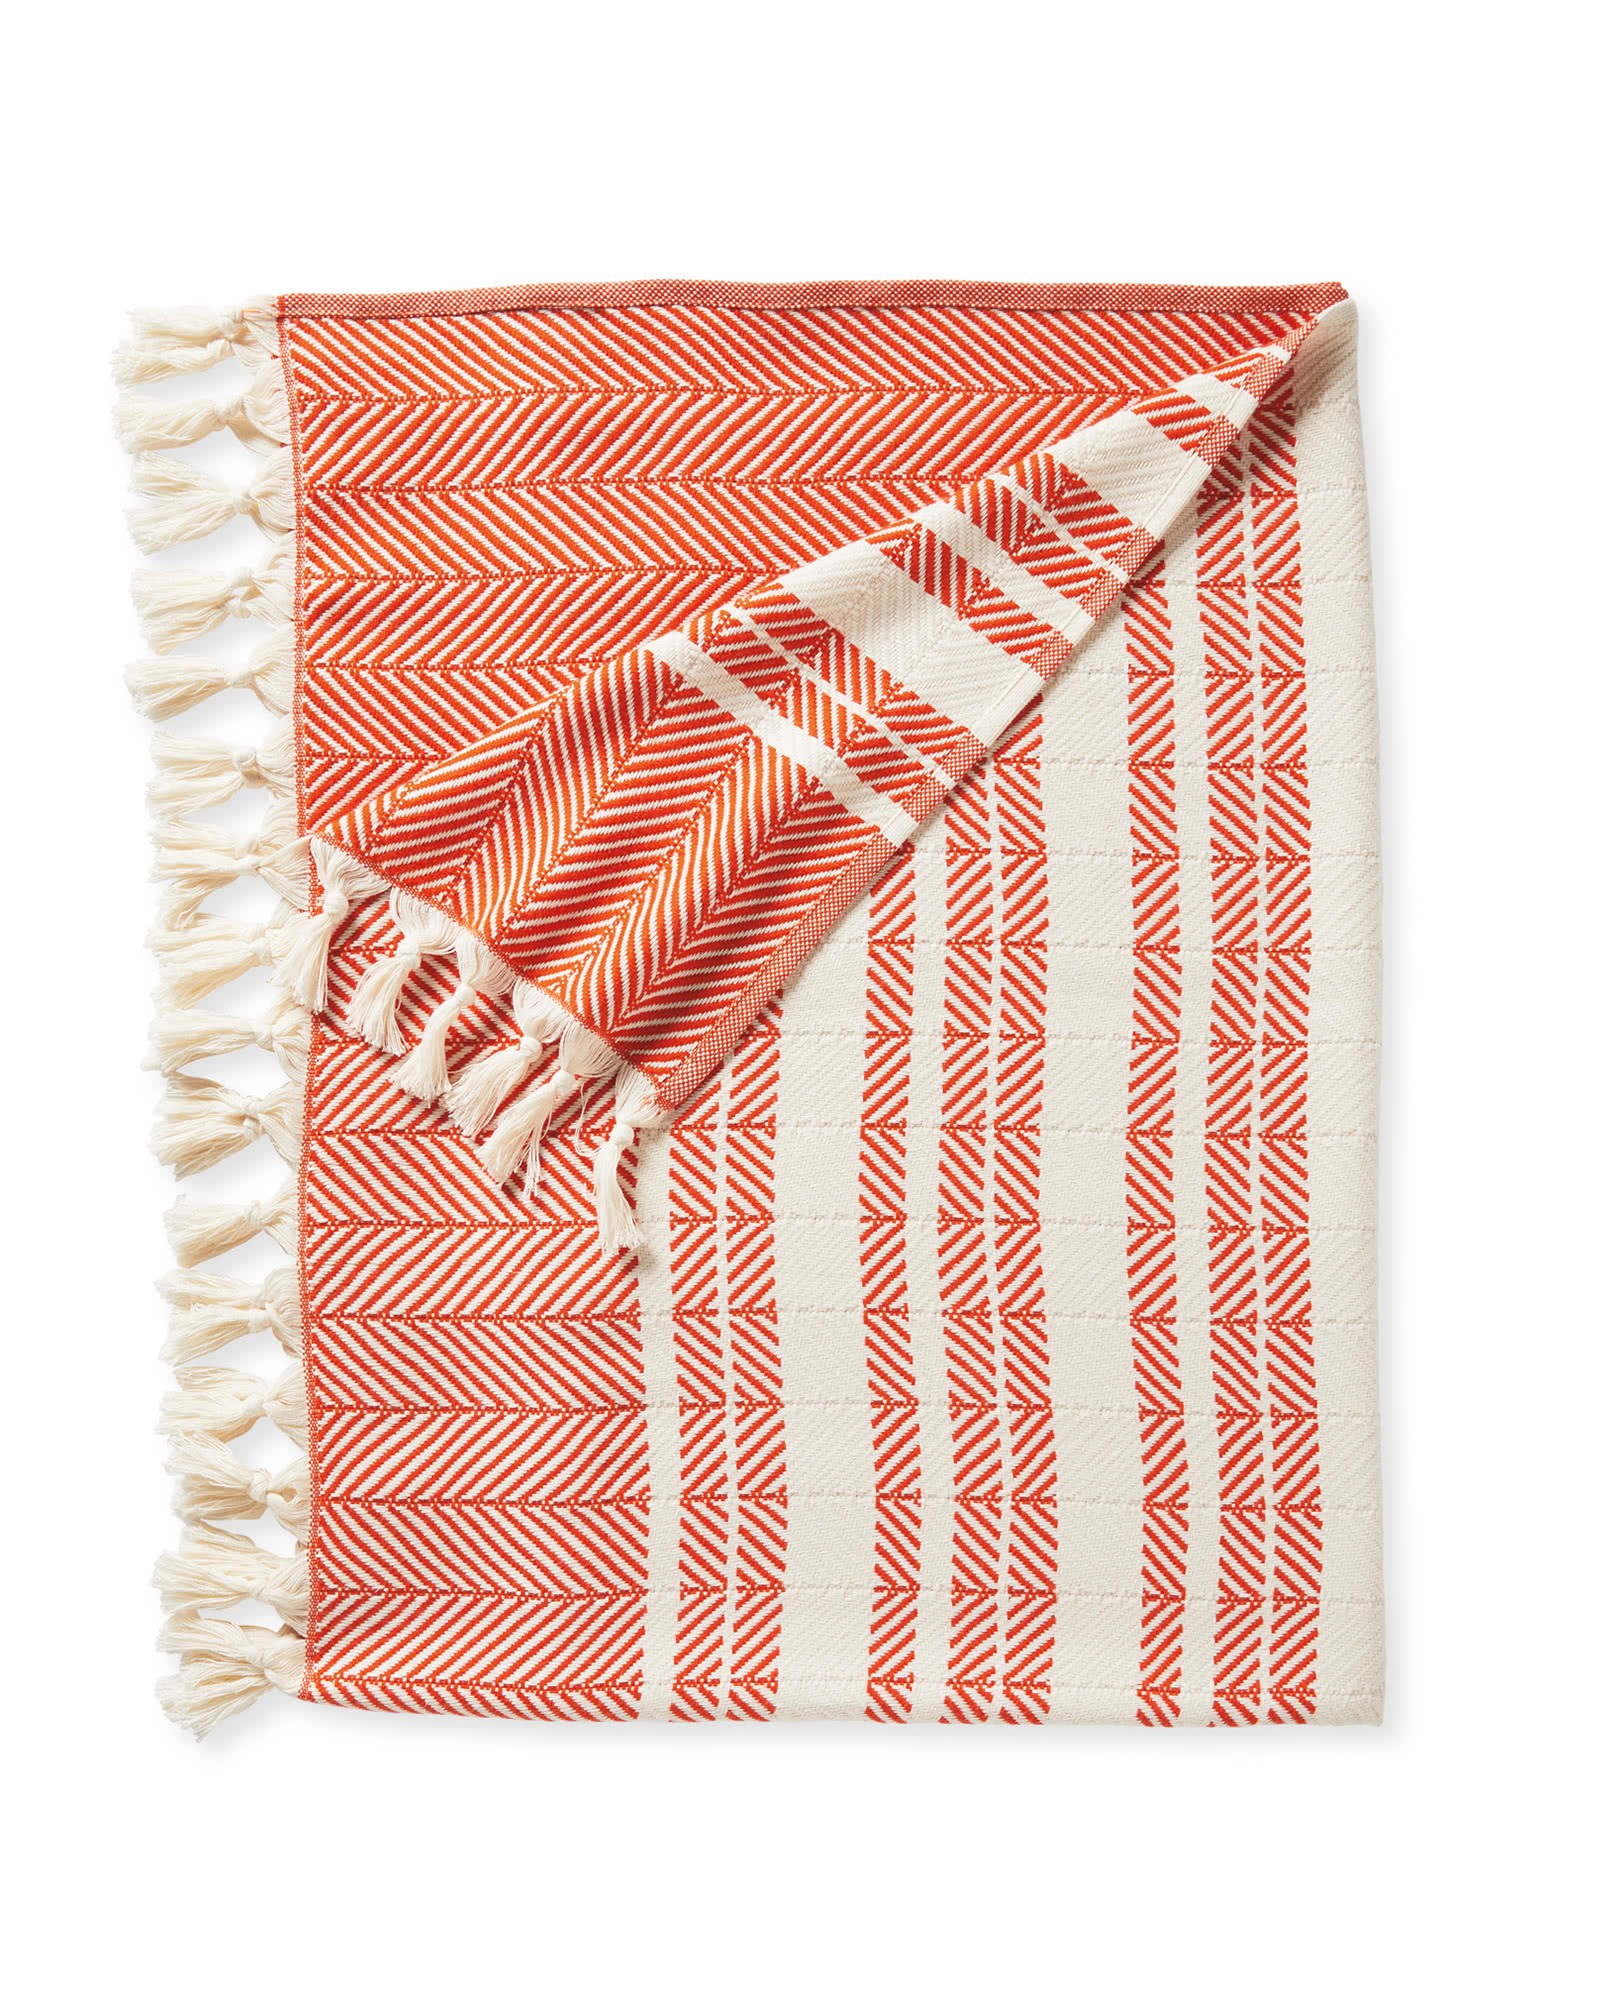 we just snapped up this  herringbone throw  in our signature orangey red!